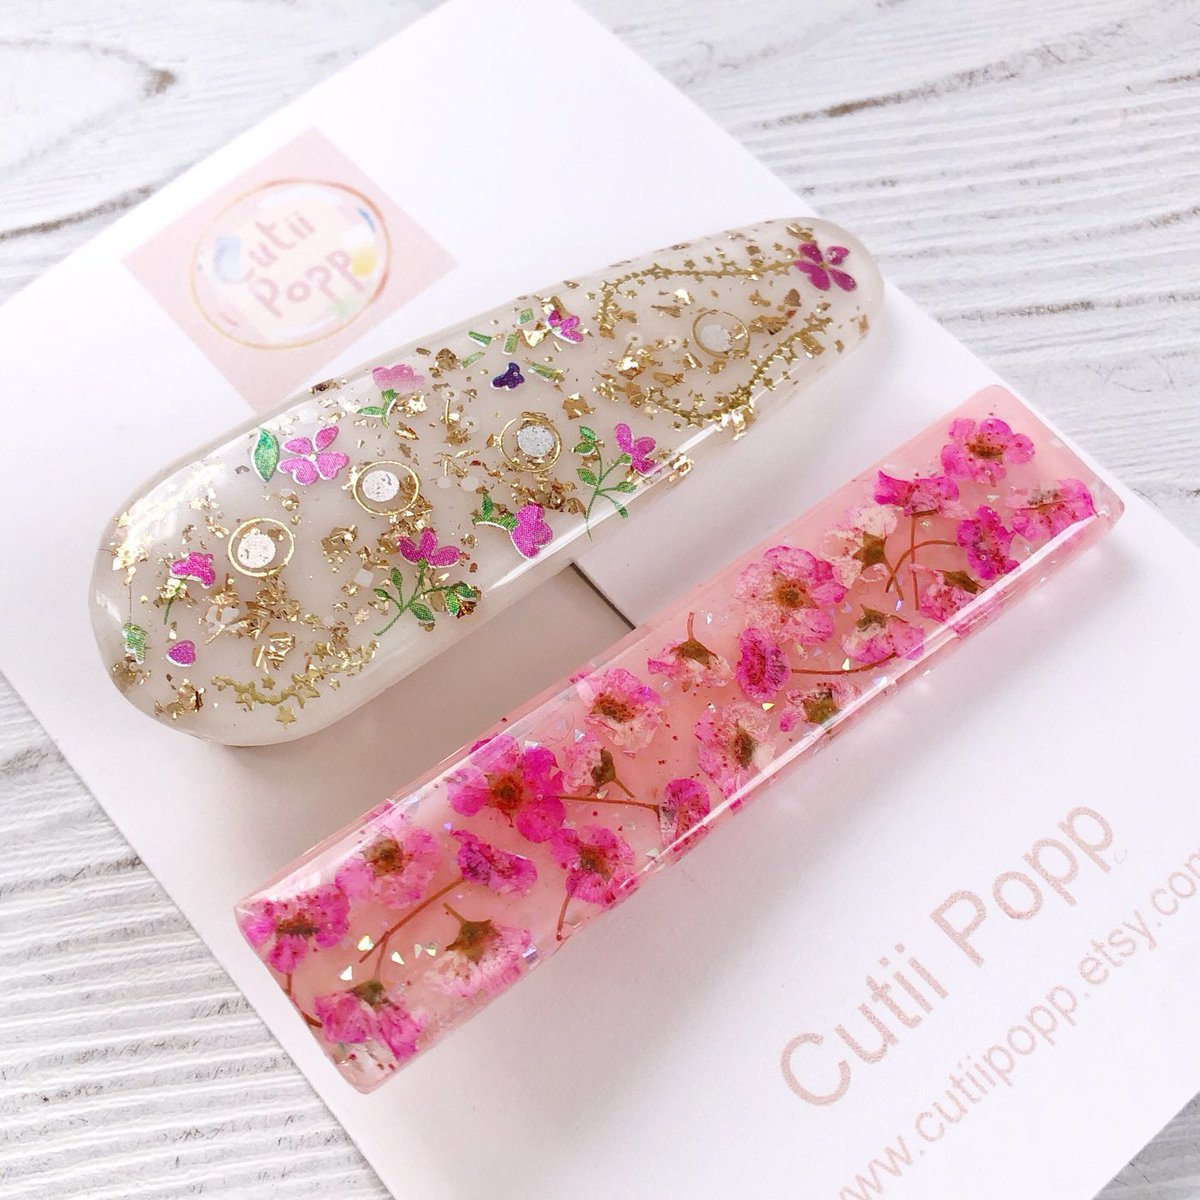 Excited to share the latest addition to my #etsy shop: Kawaii Dried Flower Hair Pin Set Floral Resin Hair Pin Hair Clip Floral Hair Accessories Easter Gift For Her